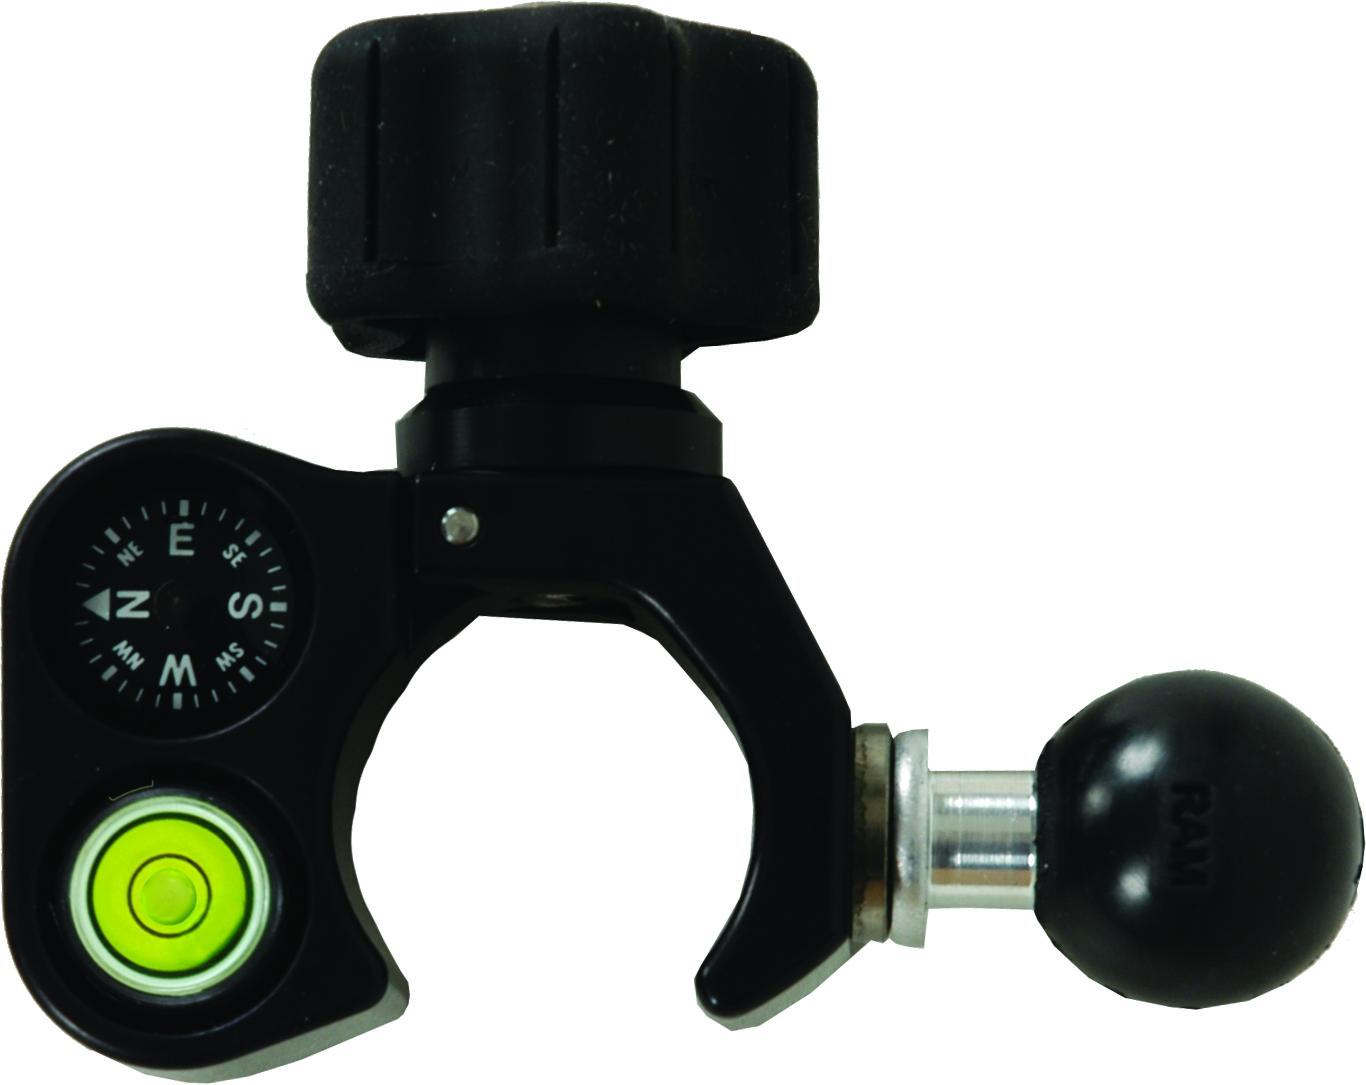 SECO Claw Ball-and-Socket Clamp 40 Min & Compass 5200-165